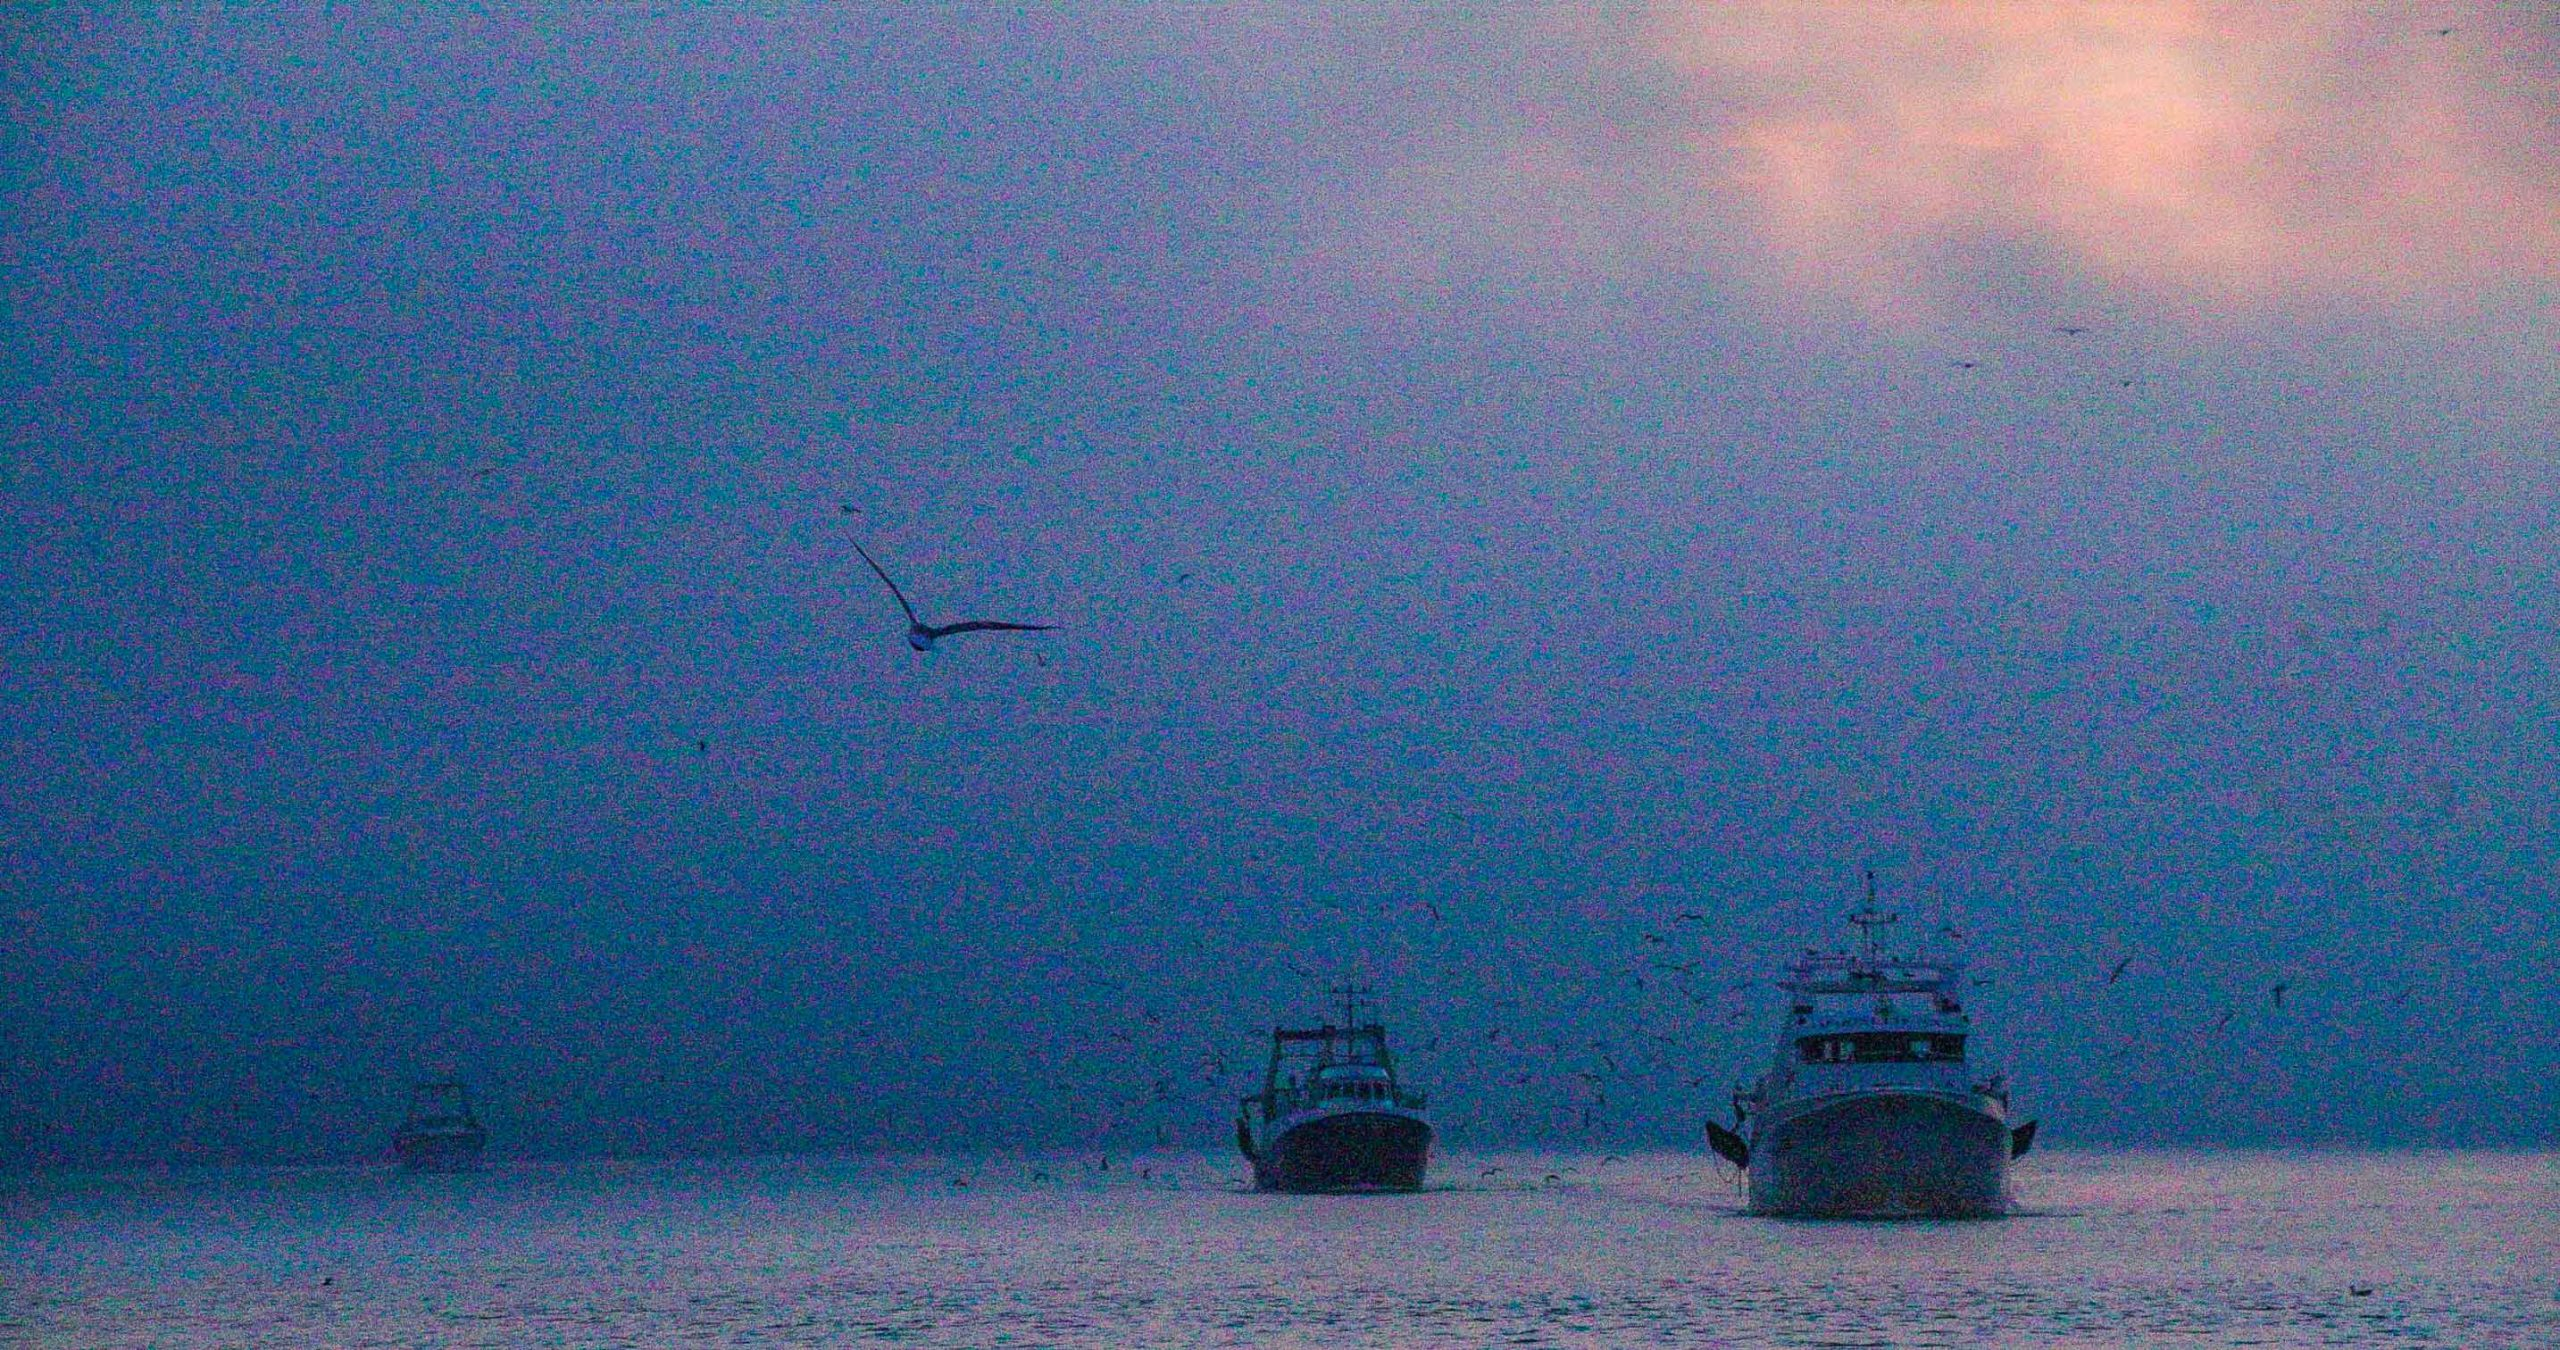 Photograph of a trawler, not processed with HDRinstant